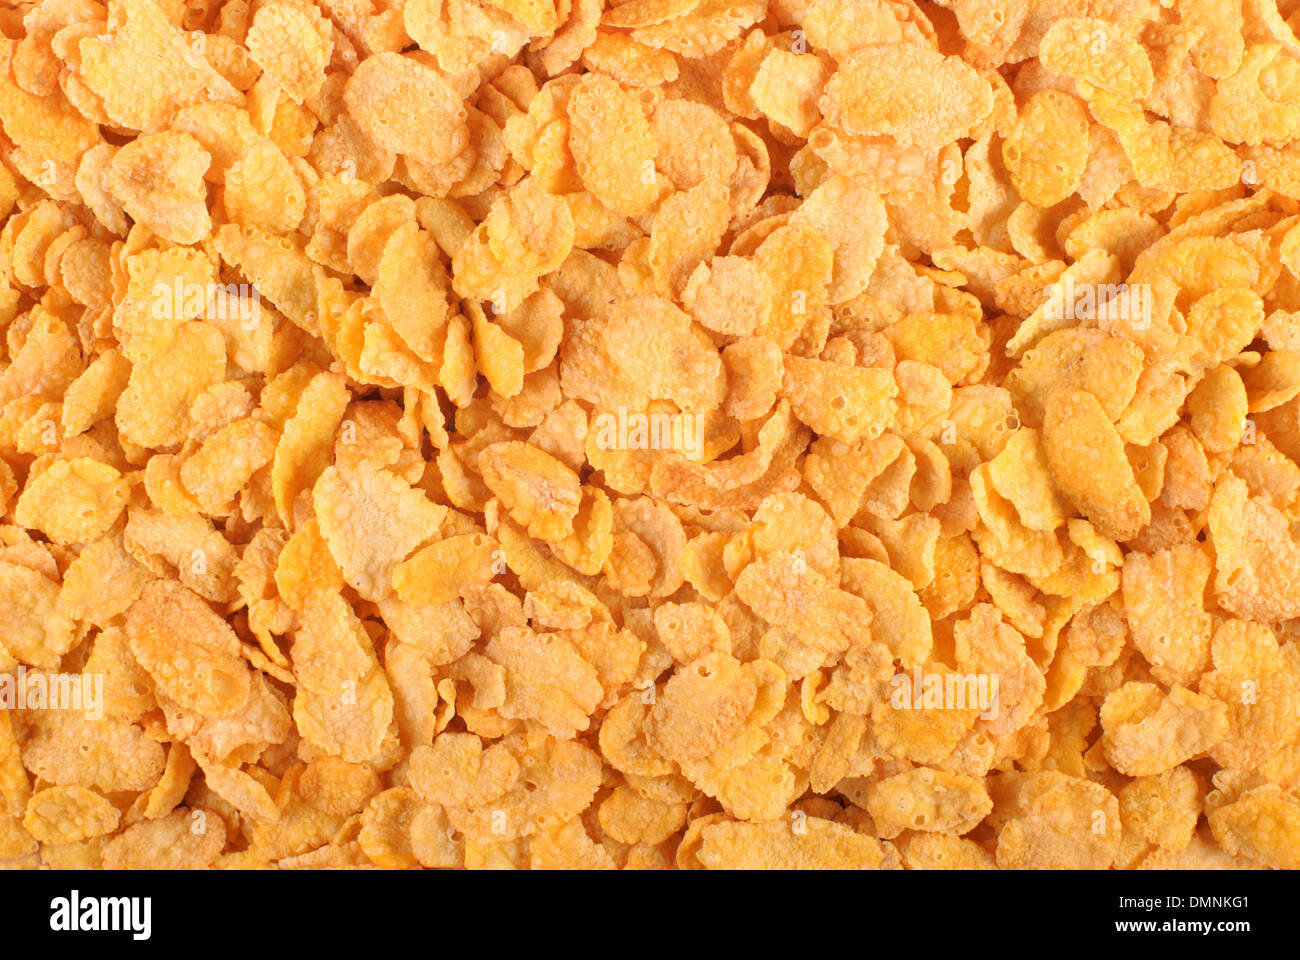 Corn flakes background. Top view - Stock Image